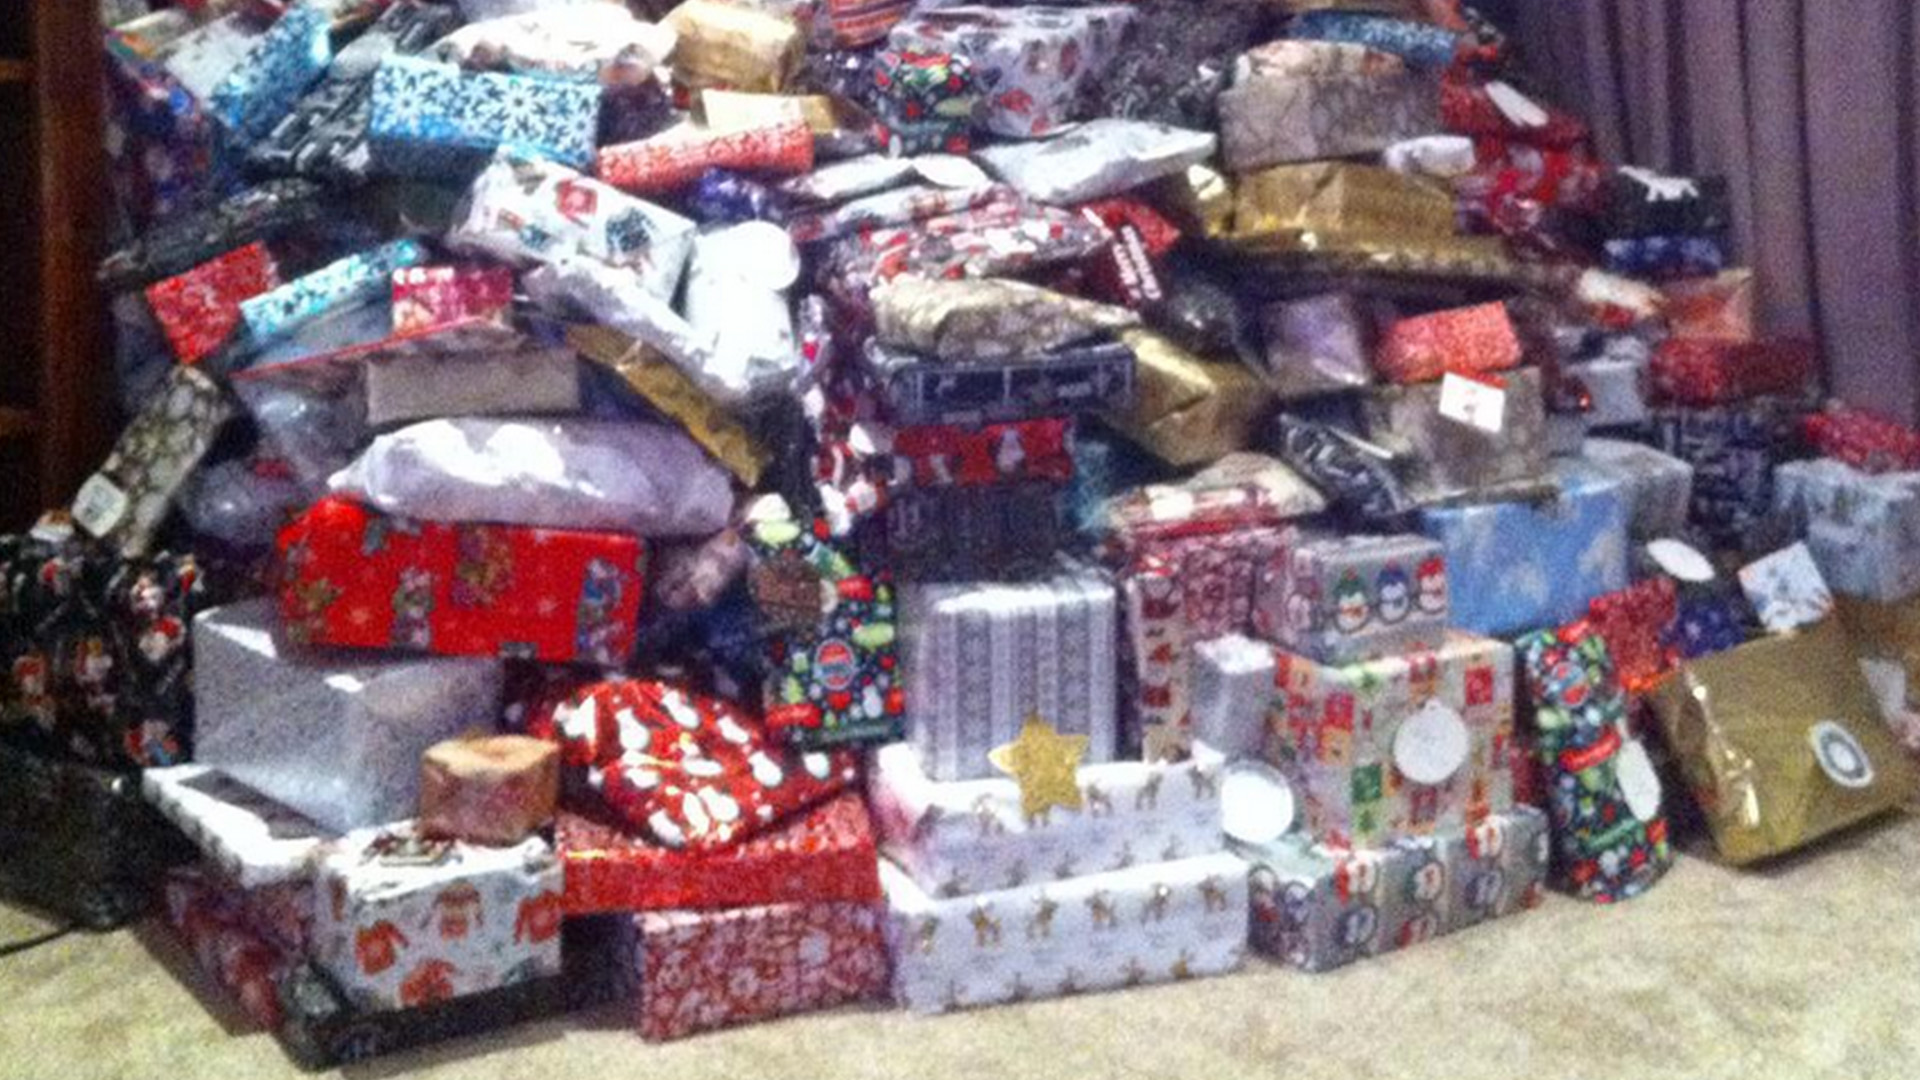 Mother Defends Viral Photo of Family Christmas Tree Piled High with Presents